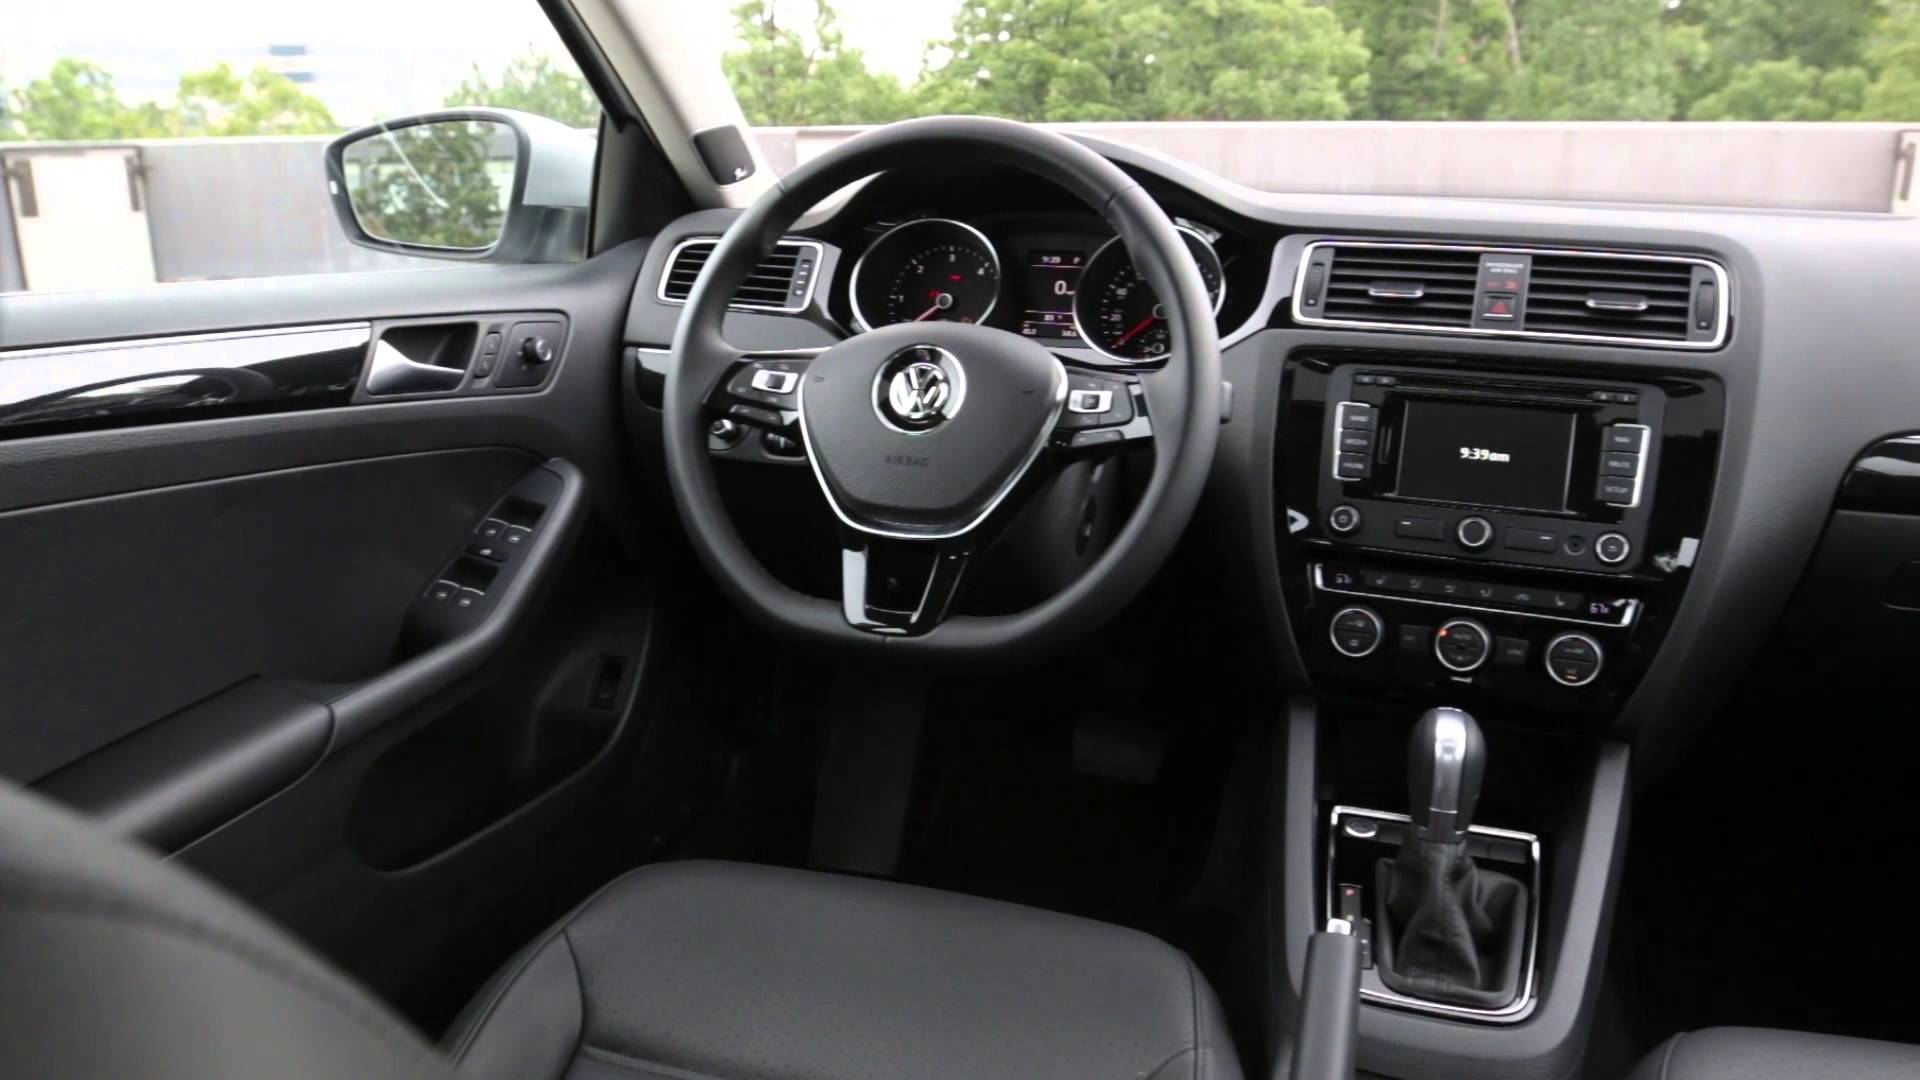 Volkswagen Jetta 2015 Interior Wallpaper 1920x1080 26458